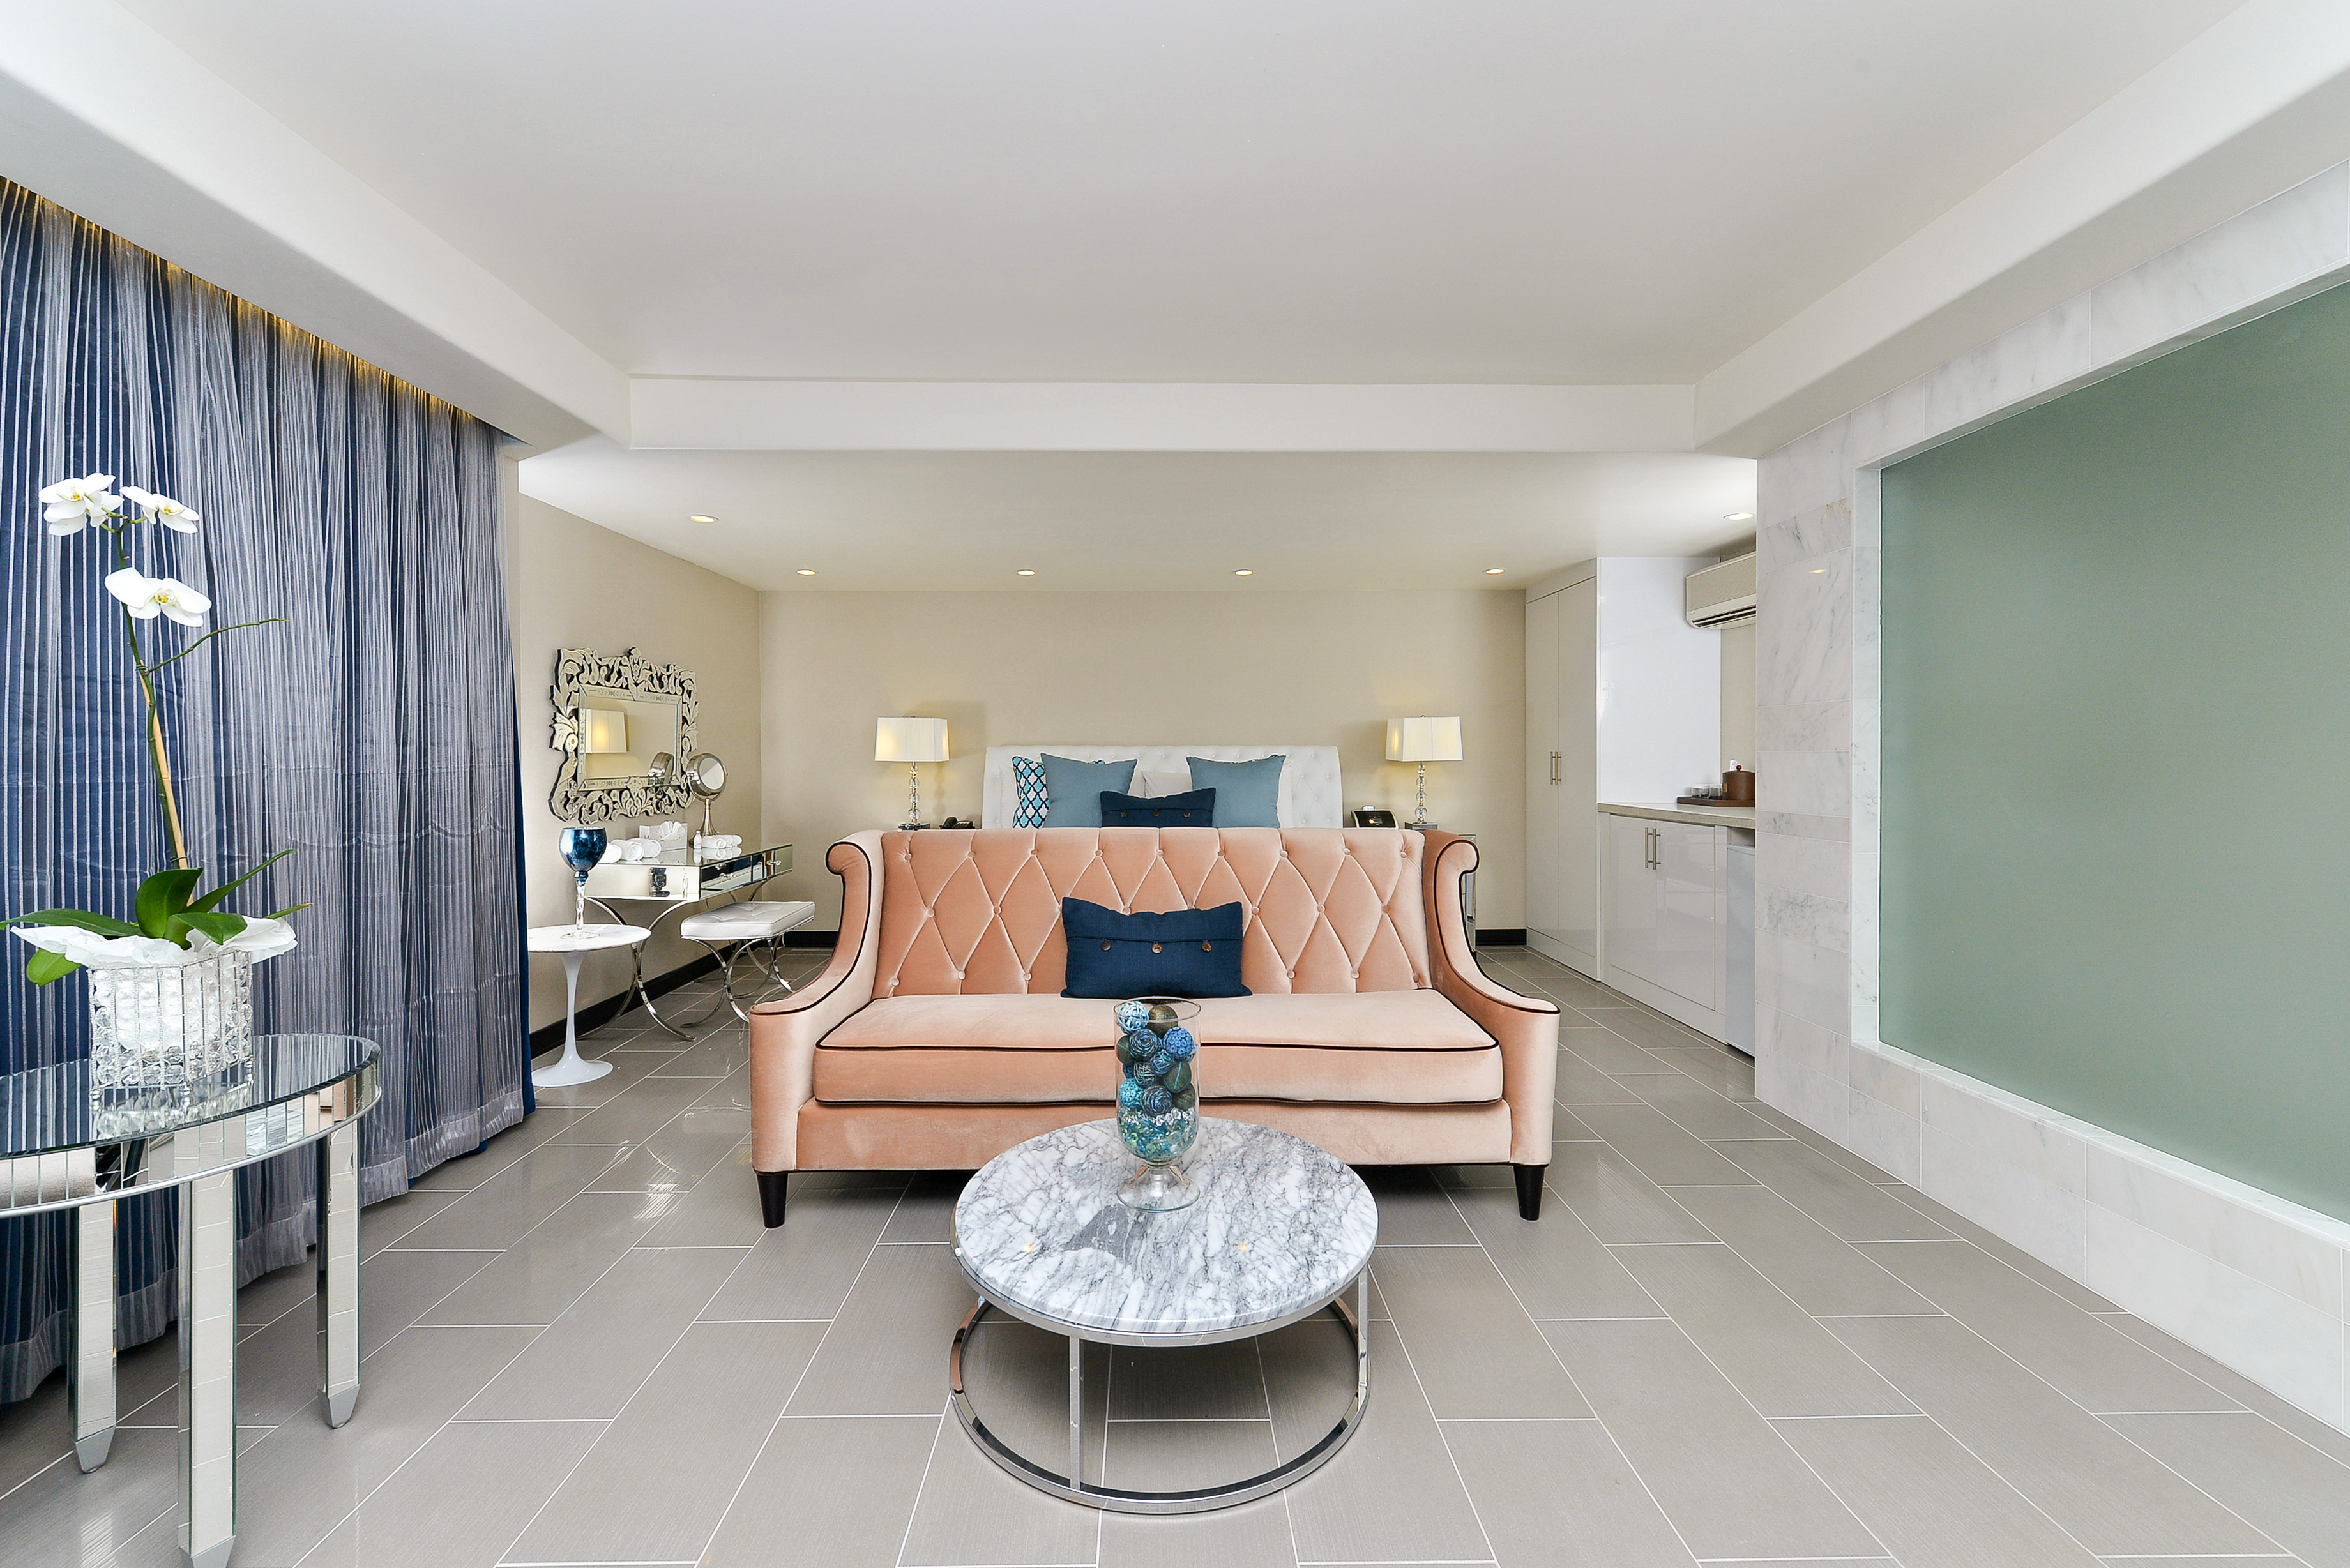 spacious guestroom with seating area